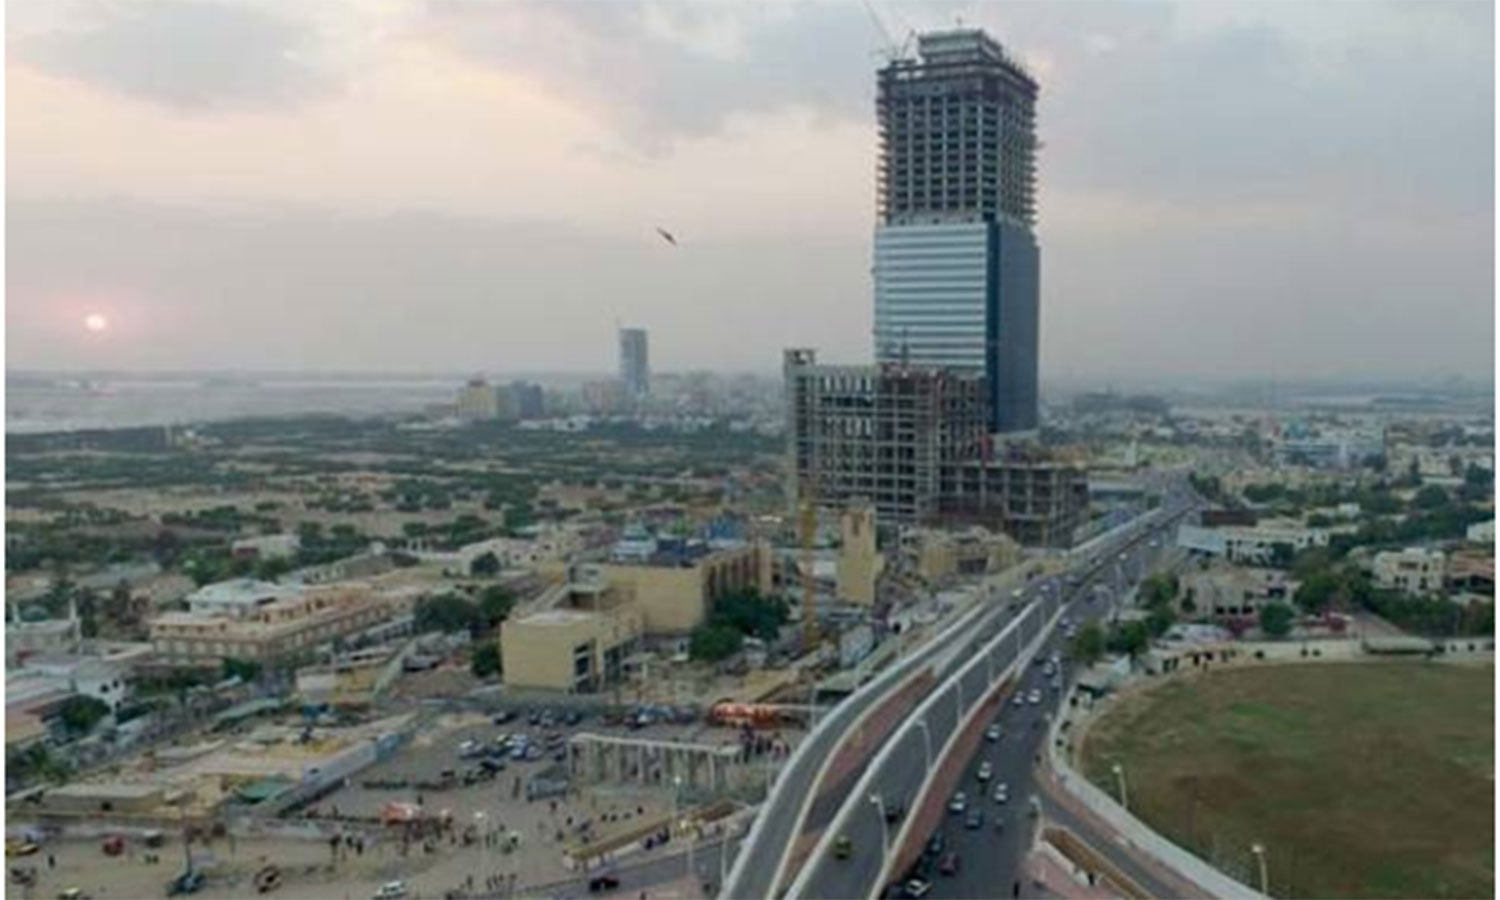 Pakistan's tallest building (the ICON Tower) being built in the New Clifton area.